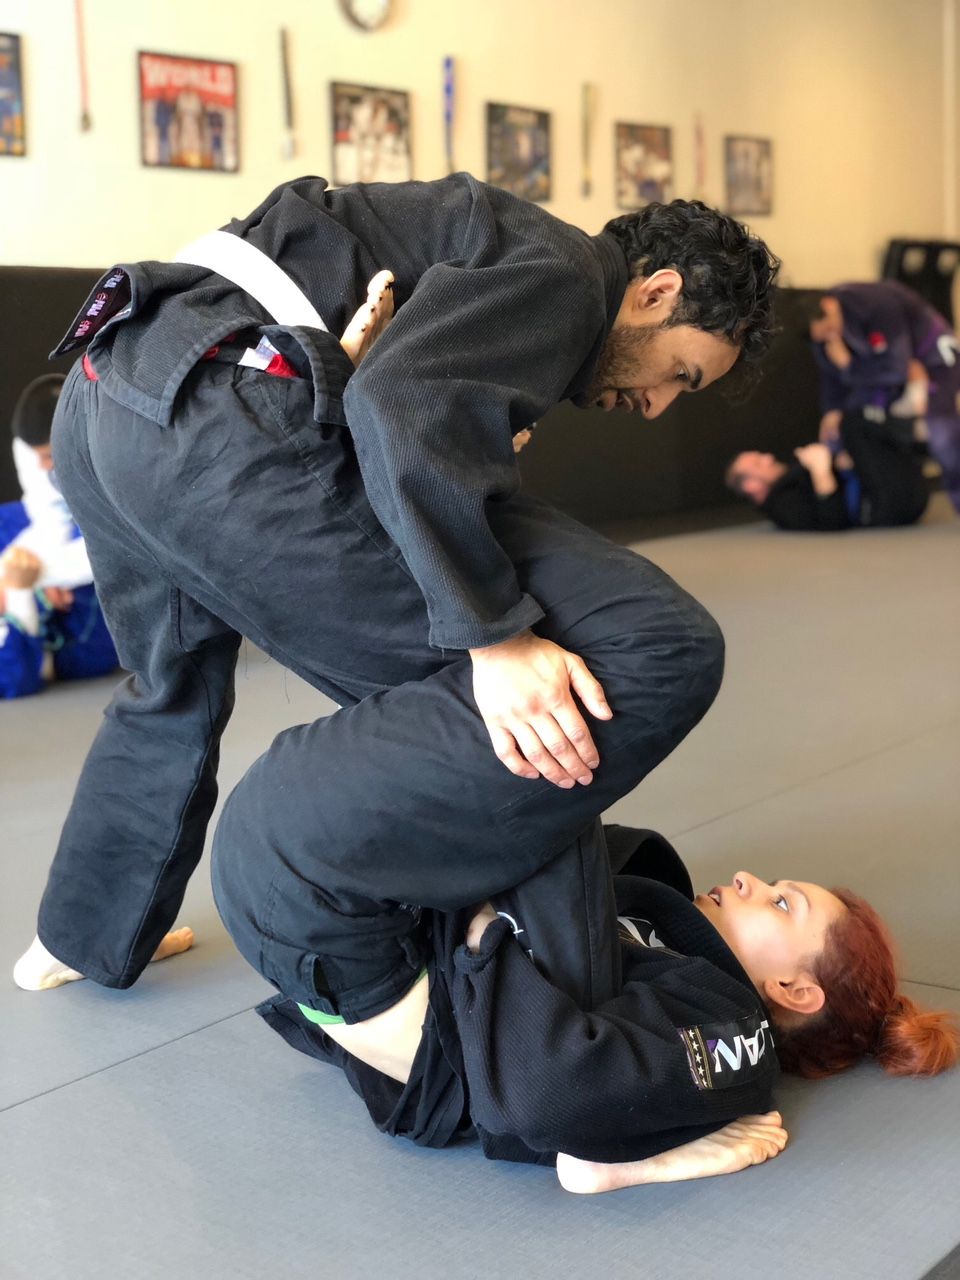 Jessica training at BJJ Adults Silanoe program in San Gabriel Alhambra